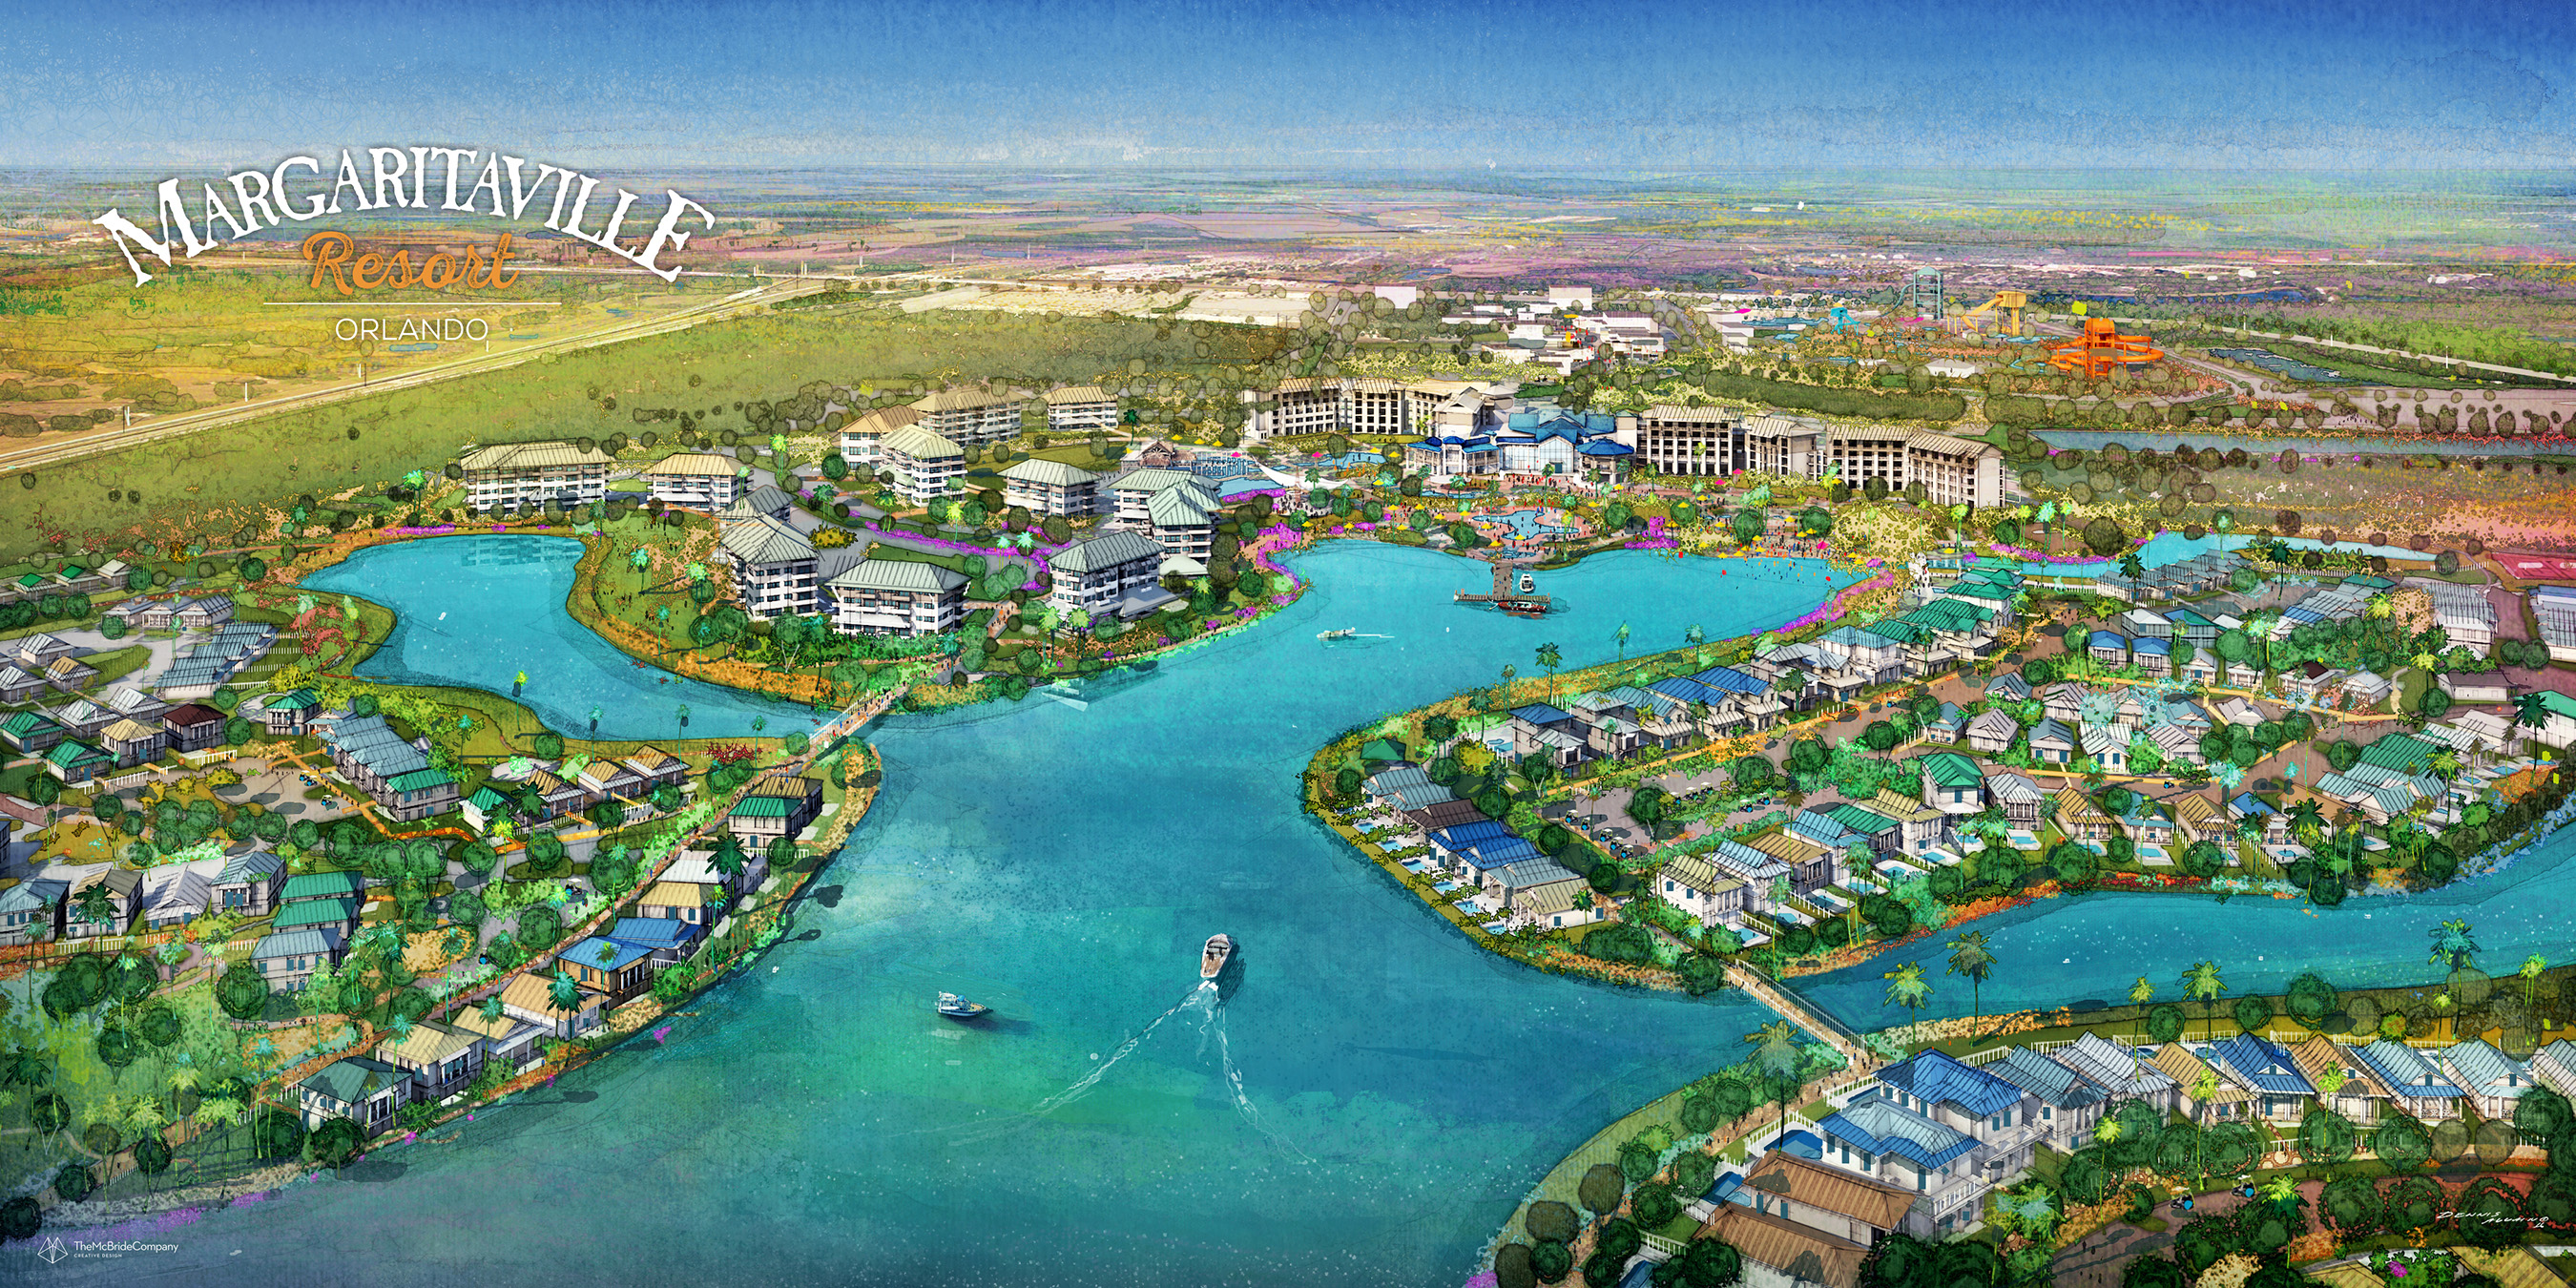 Margaritaville Resort Orlando will open with 175 rooms, 1,000 vacation homes, dining, entertainment and more.